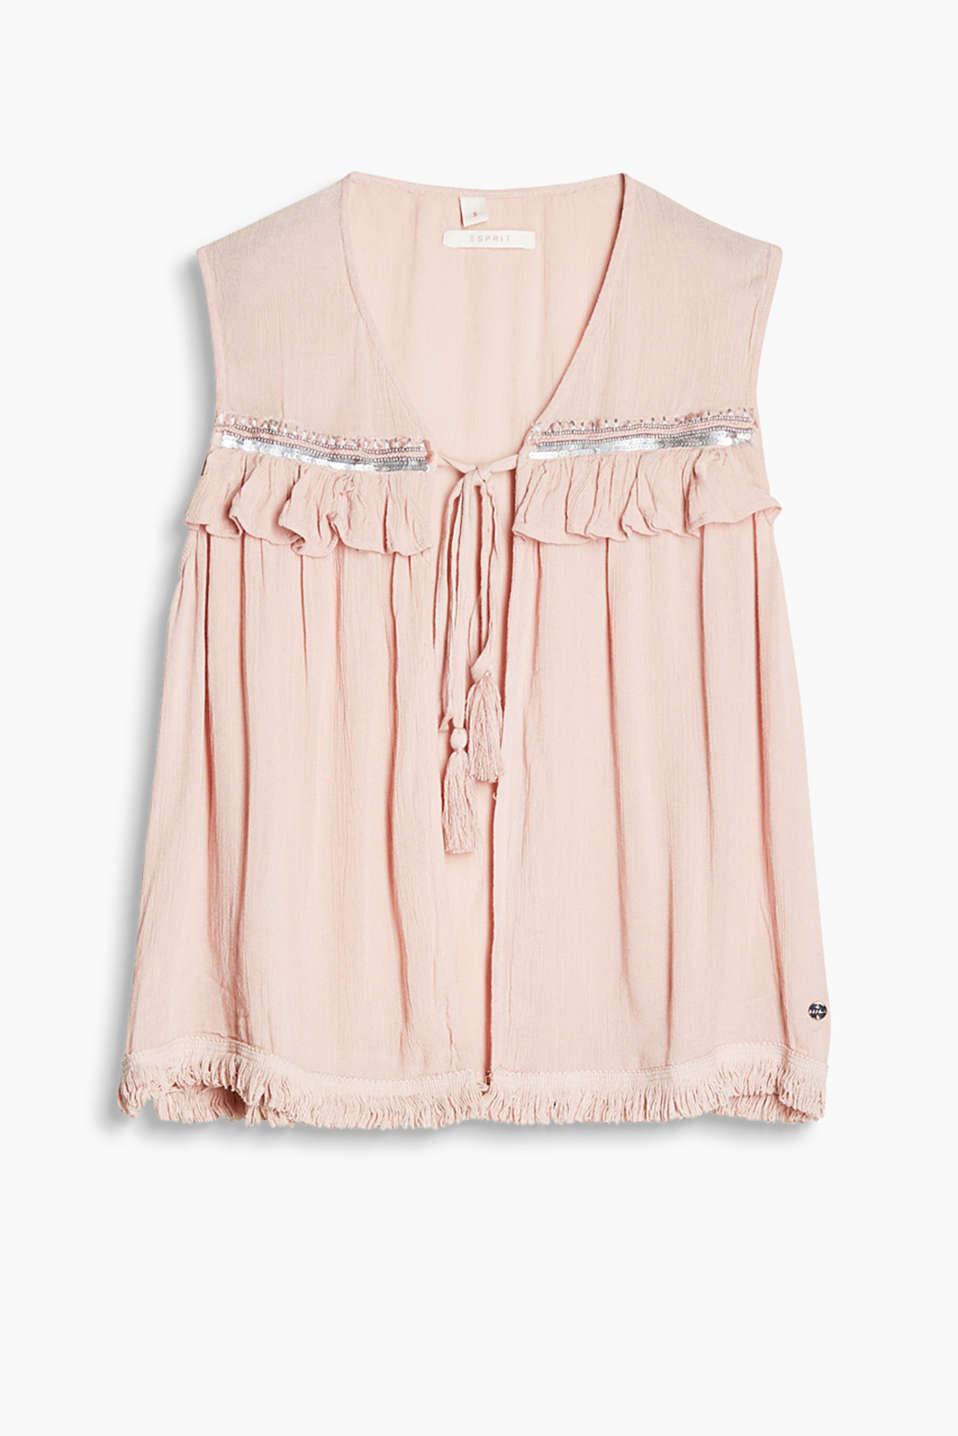 Romantic vest in light and floaty fabric with sequin embroidery, frills and a sewn-on frayed hem